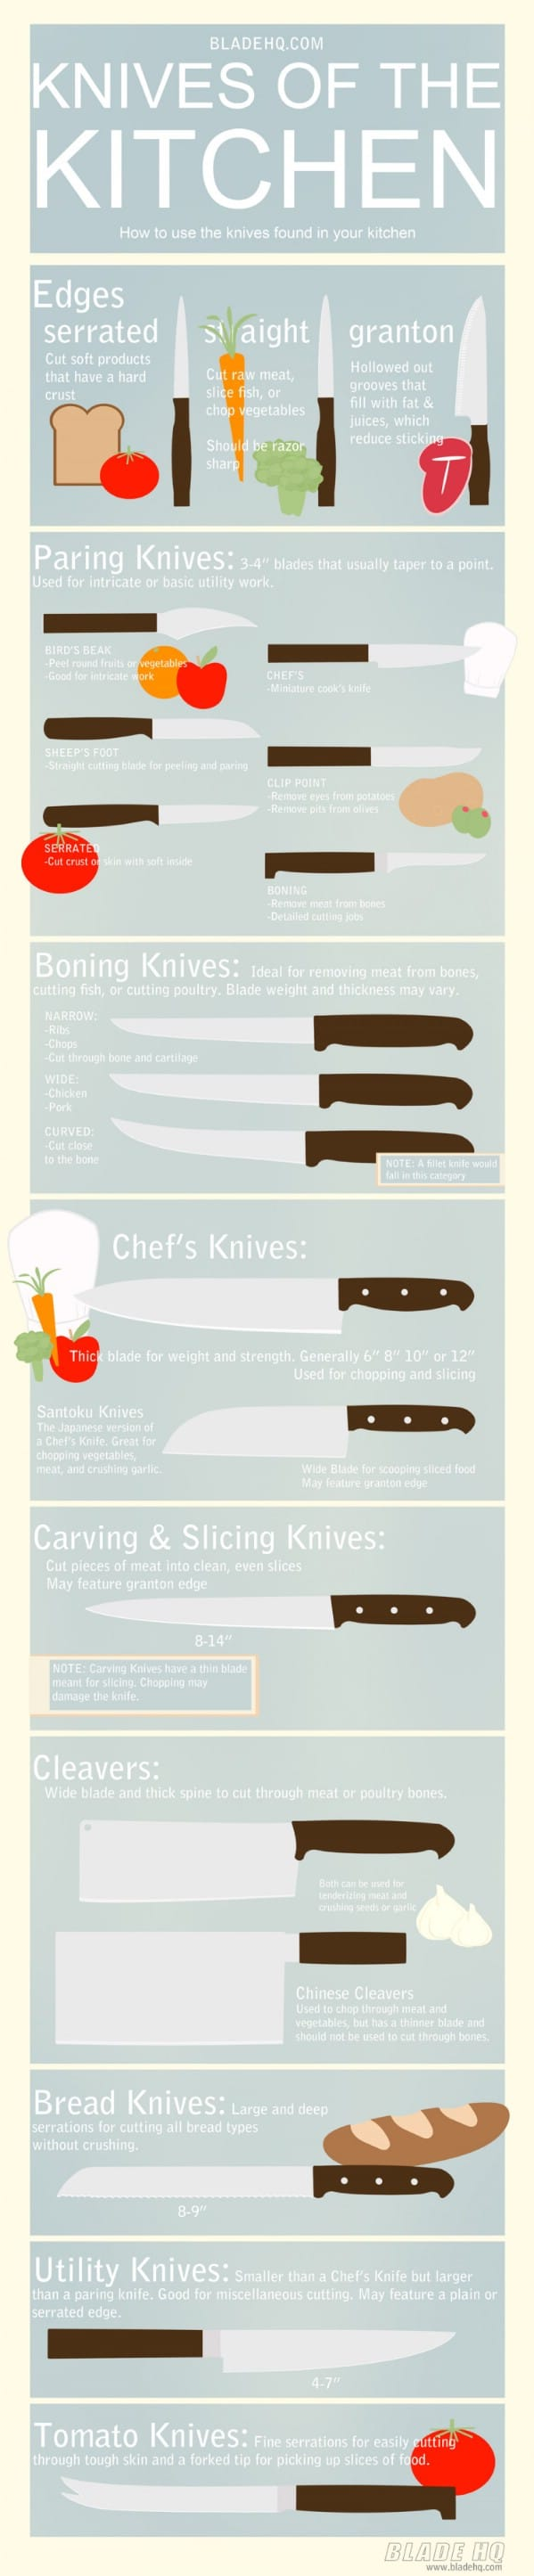 Knives - 18 Professional Kitchen Infographics to Make Cooking Easier and Faster